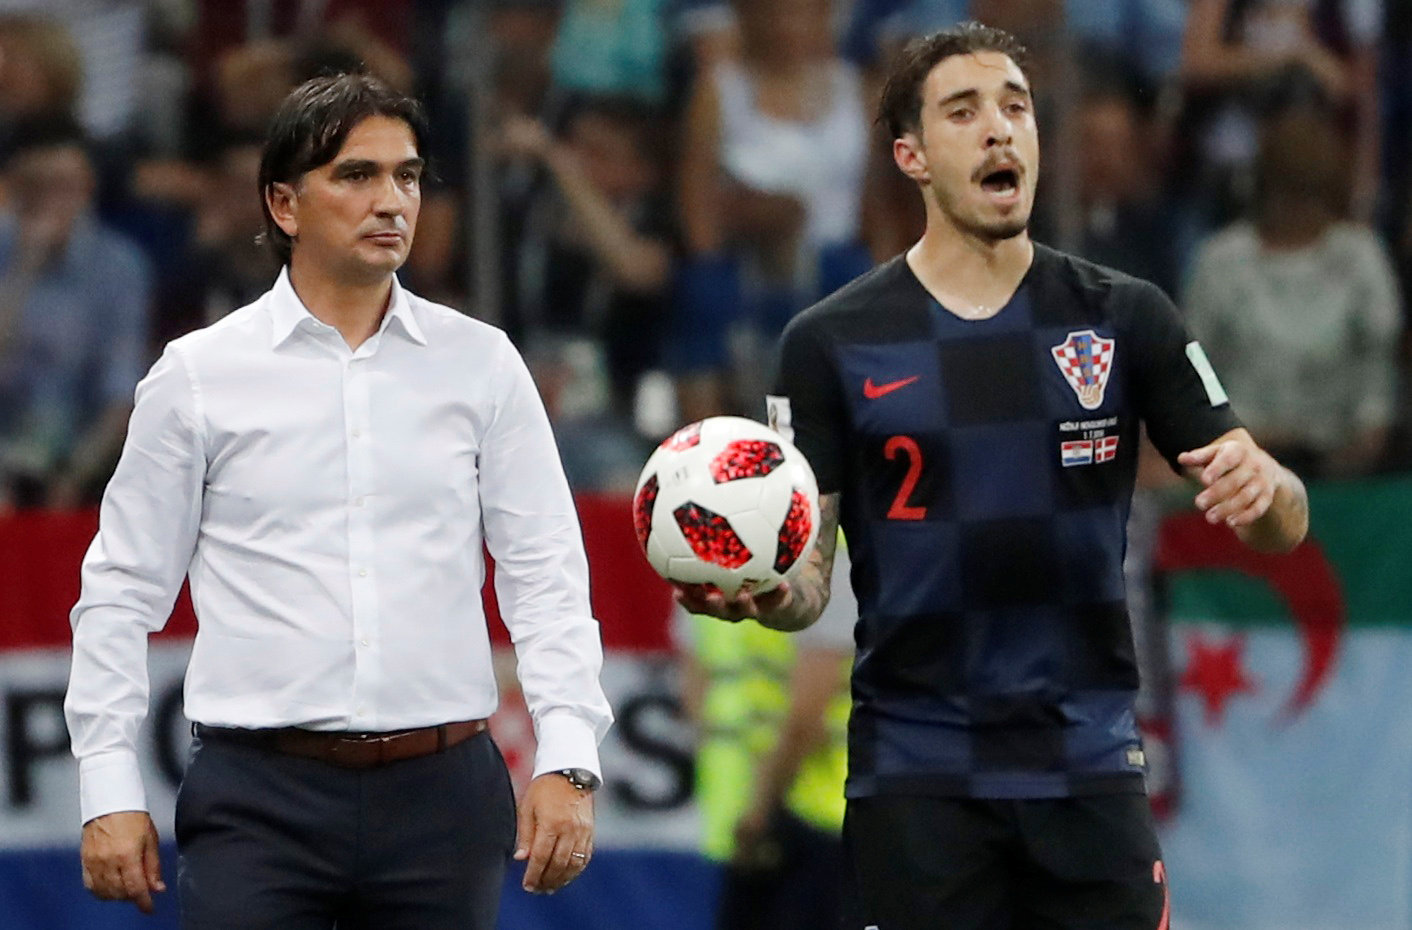 Soccer Football - World Cup - Round of 16 - Croatia vs Denmark - Nizhny Novgorod Stadium, Nizhny Novgorod, Russia - July 1, 2018  Croatia's Sime Vrsaljko prepares to take a throw in as coach Zlatko Dalic looks on  REUTERS/Carlos Barria